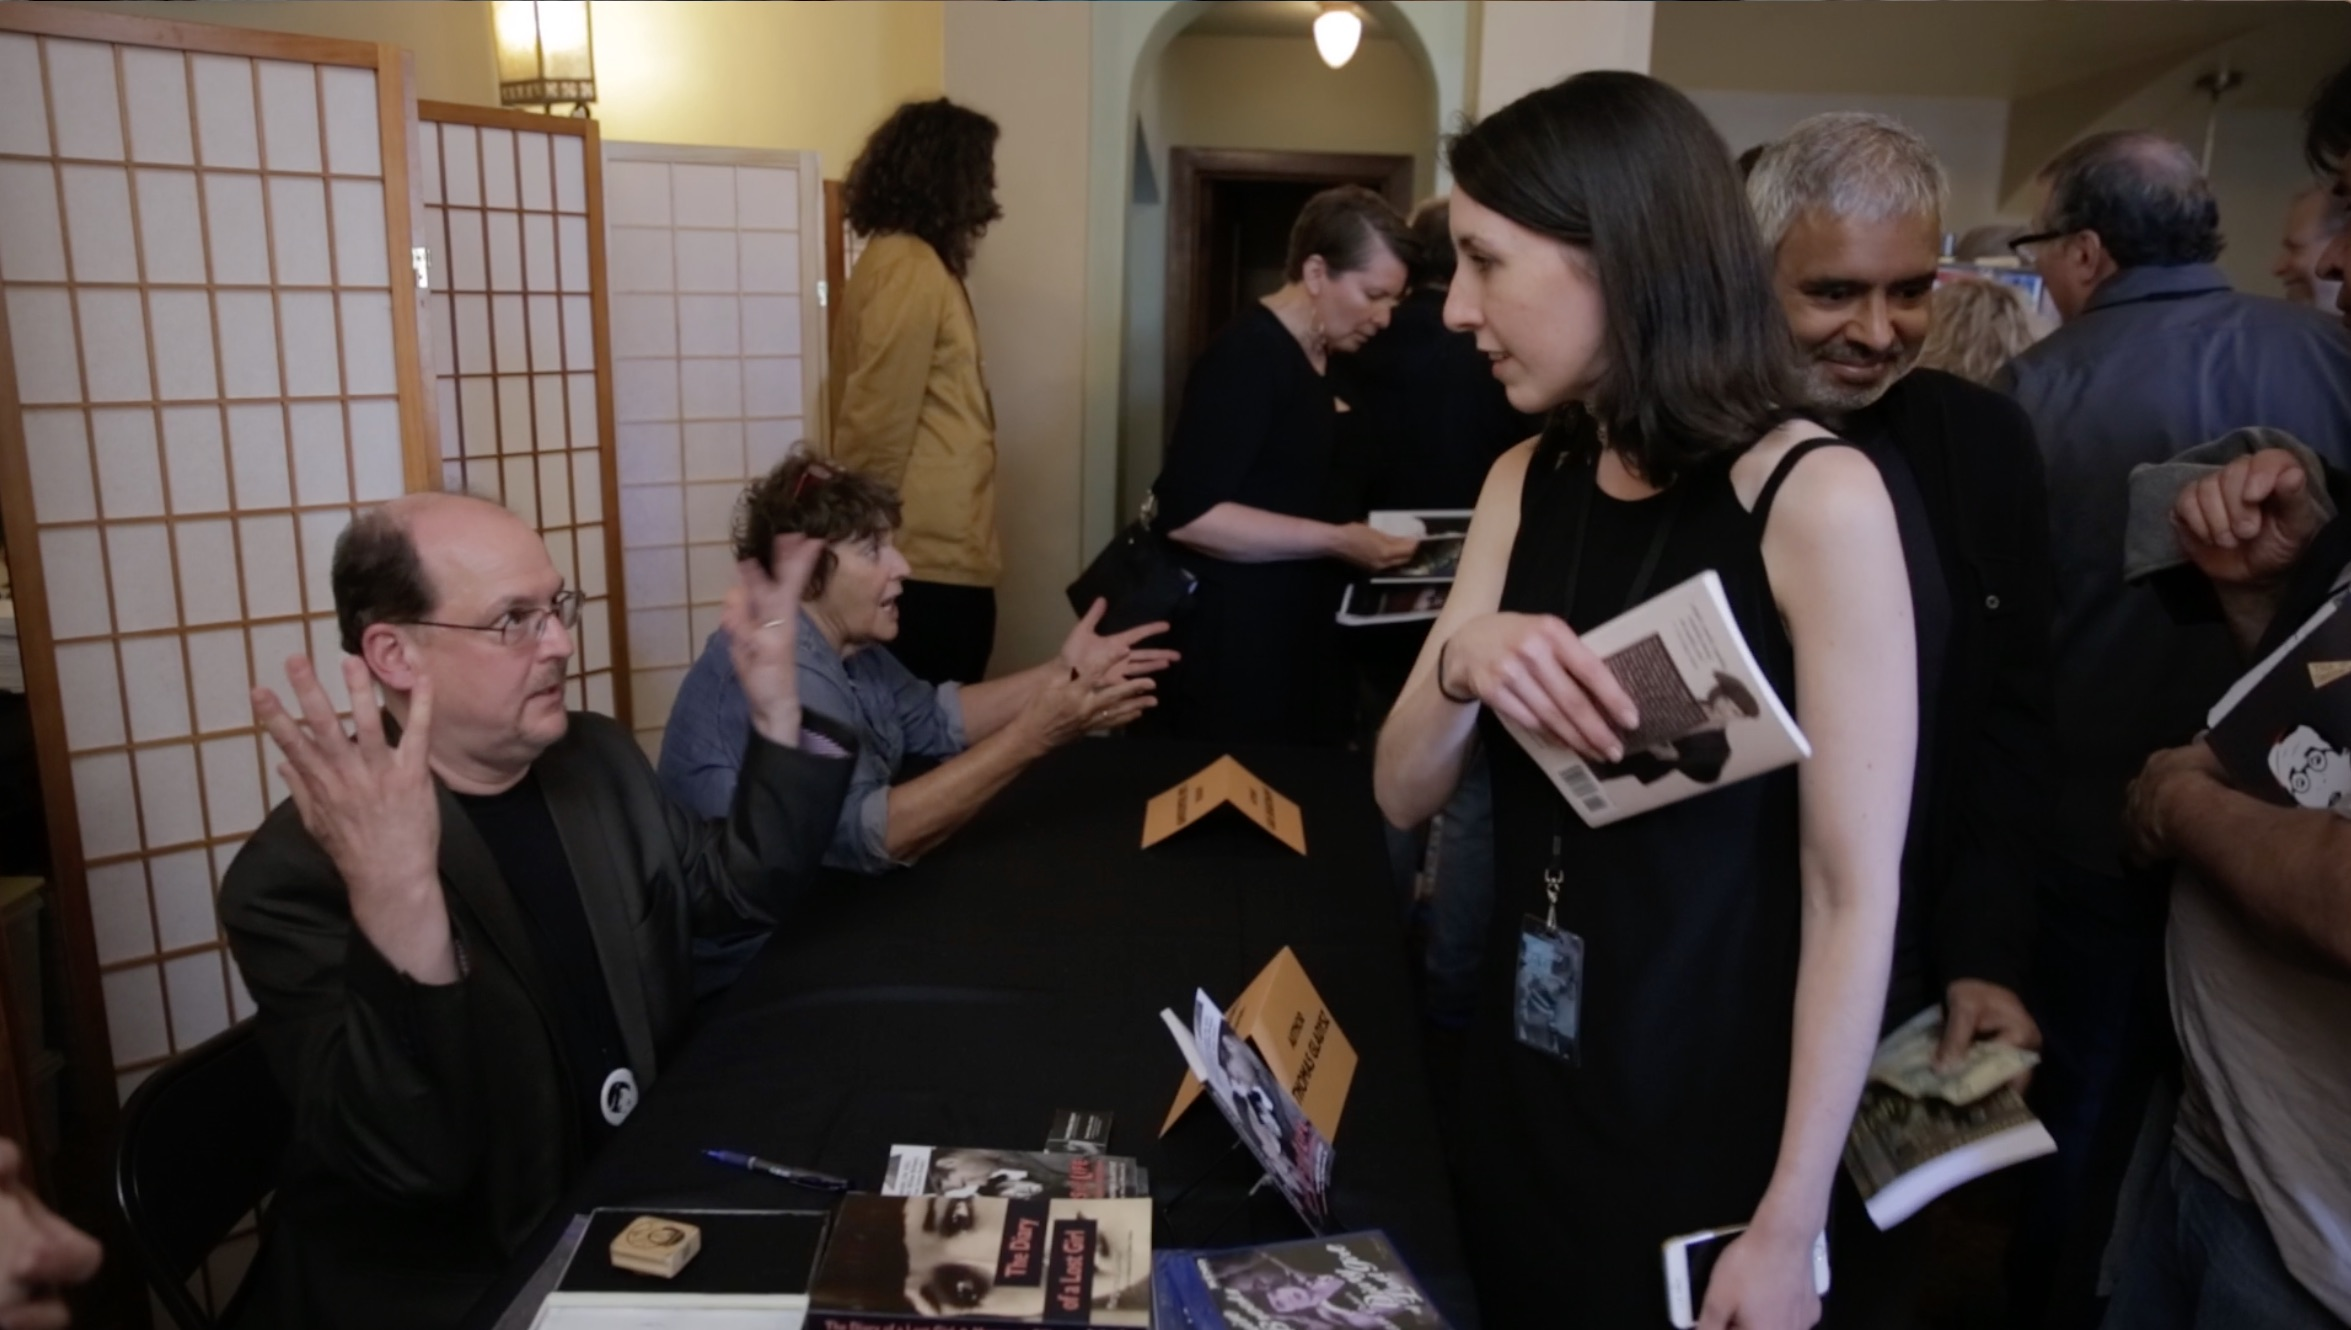 Thomas Gladysz and Charlotte Siller at his book signing after the film screening, celebrating the release of his new piece called  Beggars of Life: A Companion to the 1928 Film.